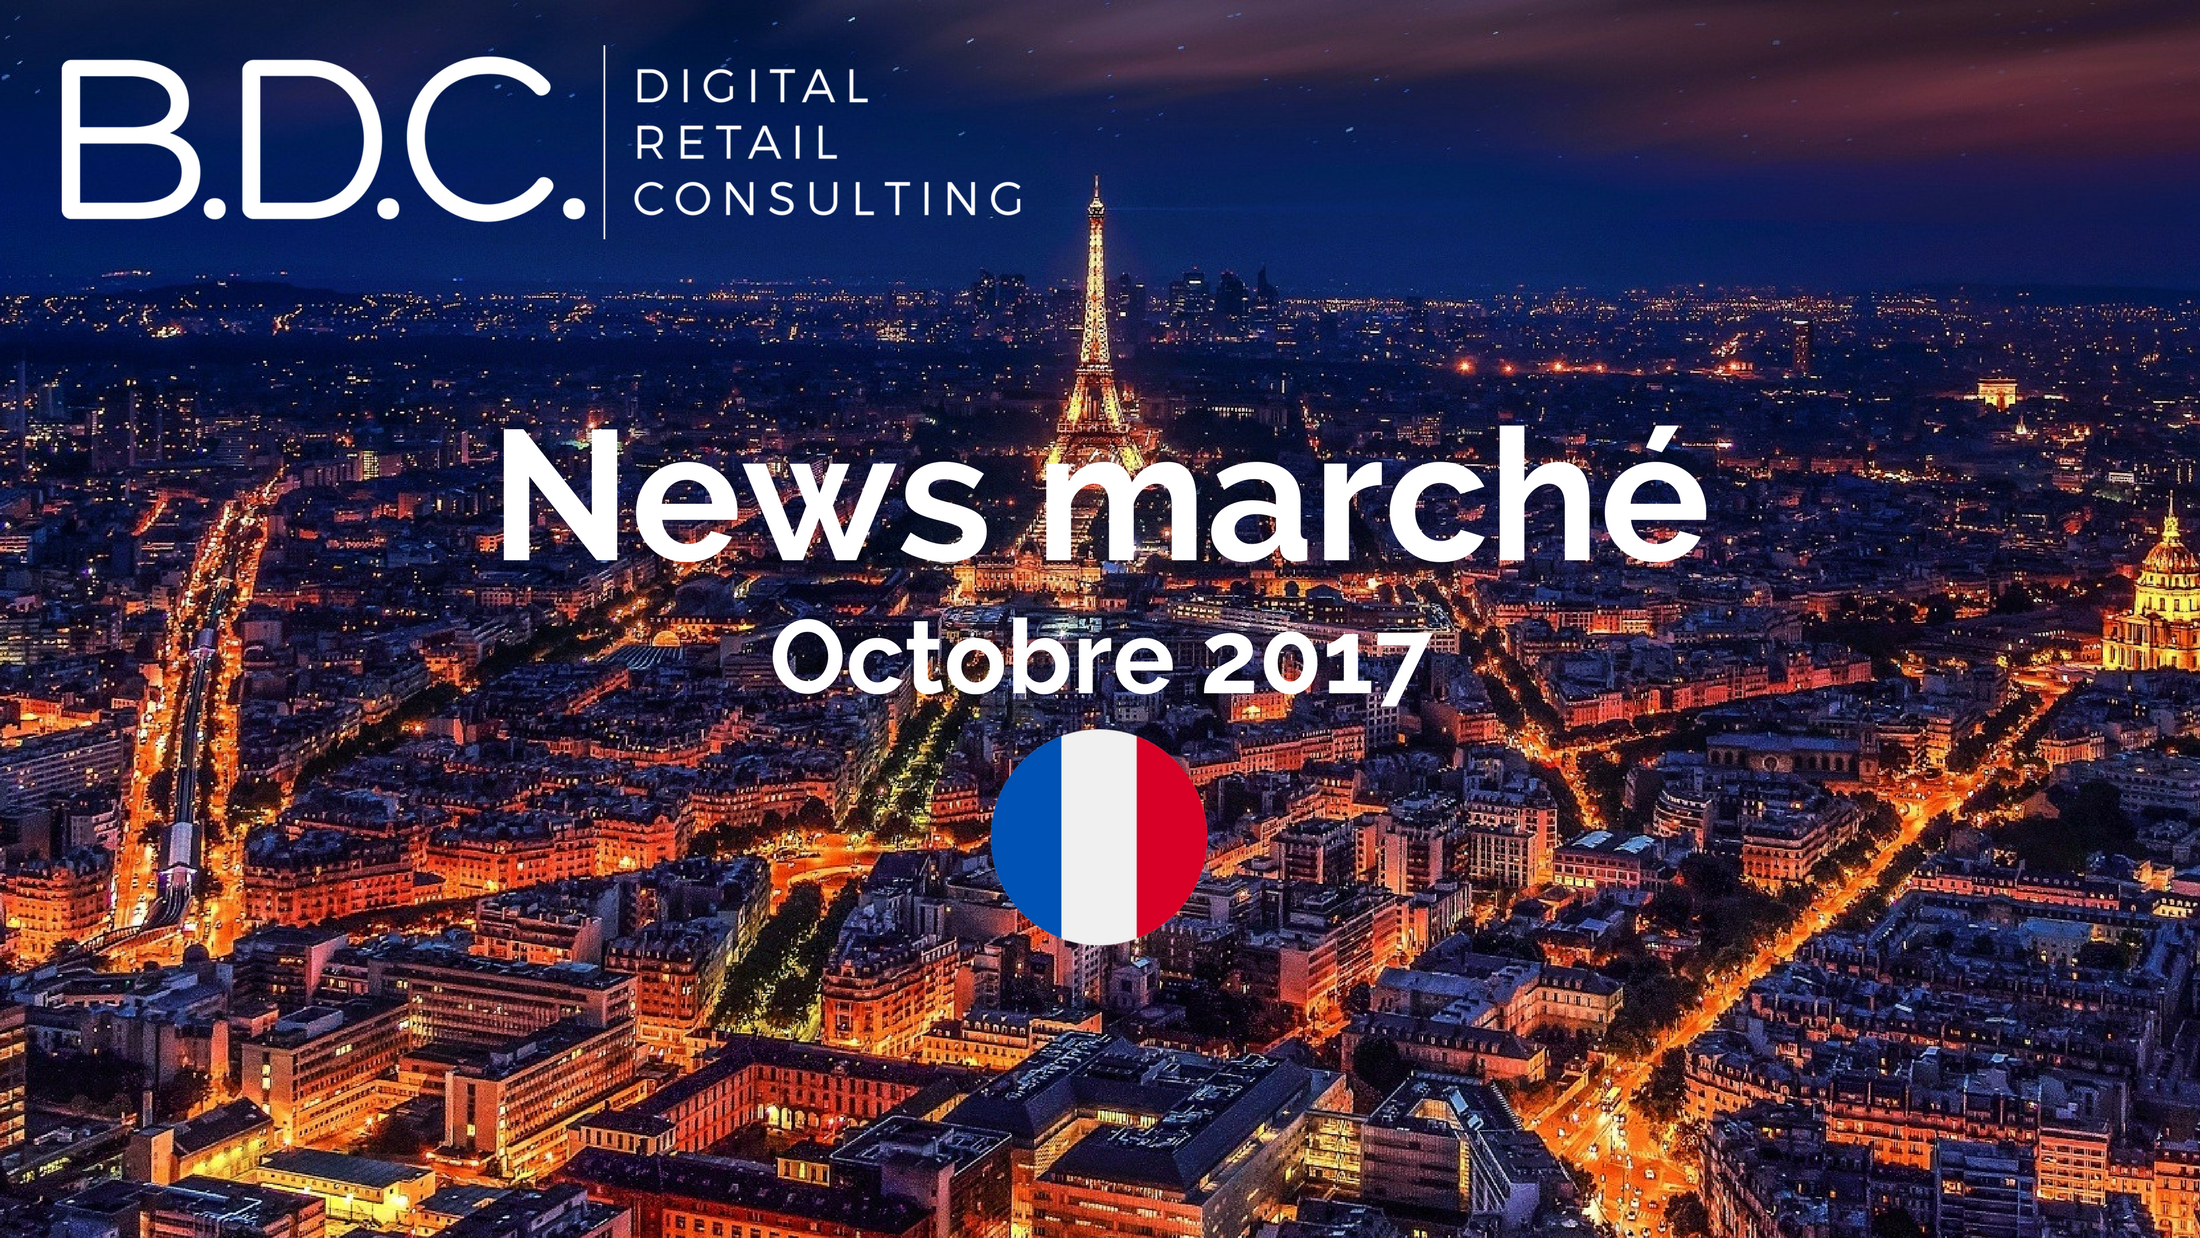 Trends News - NEWS MARCHÉ - OCTOBRE 2017